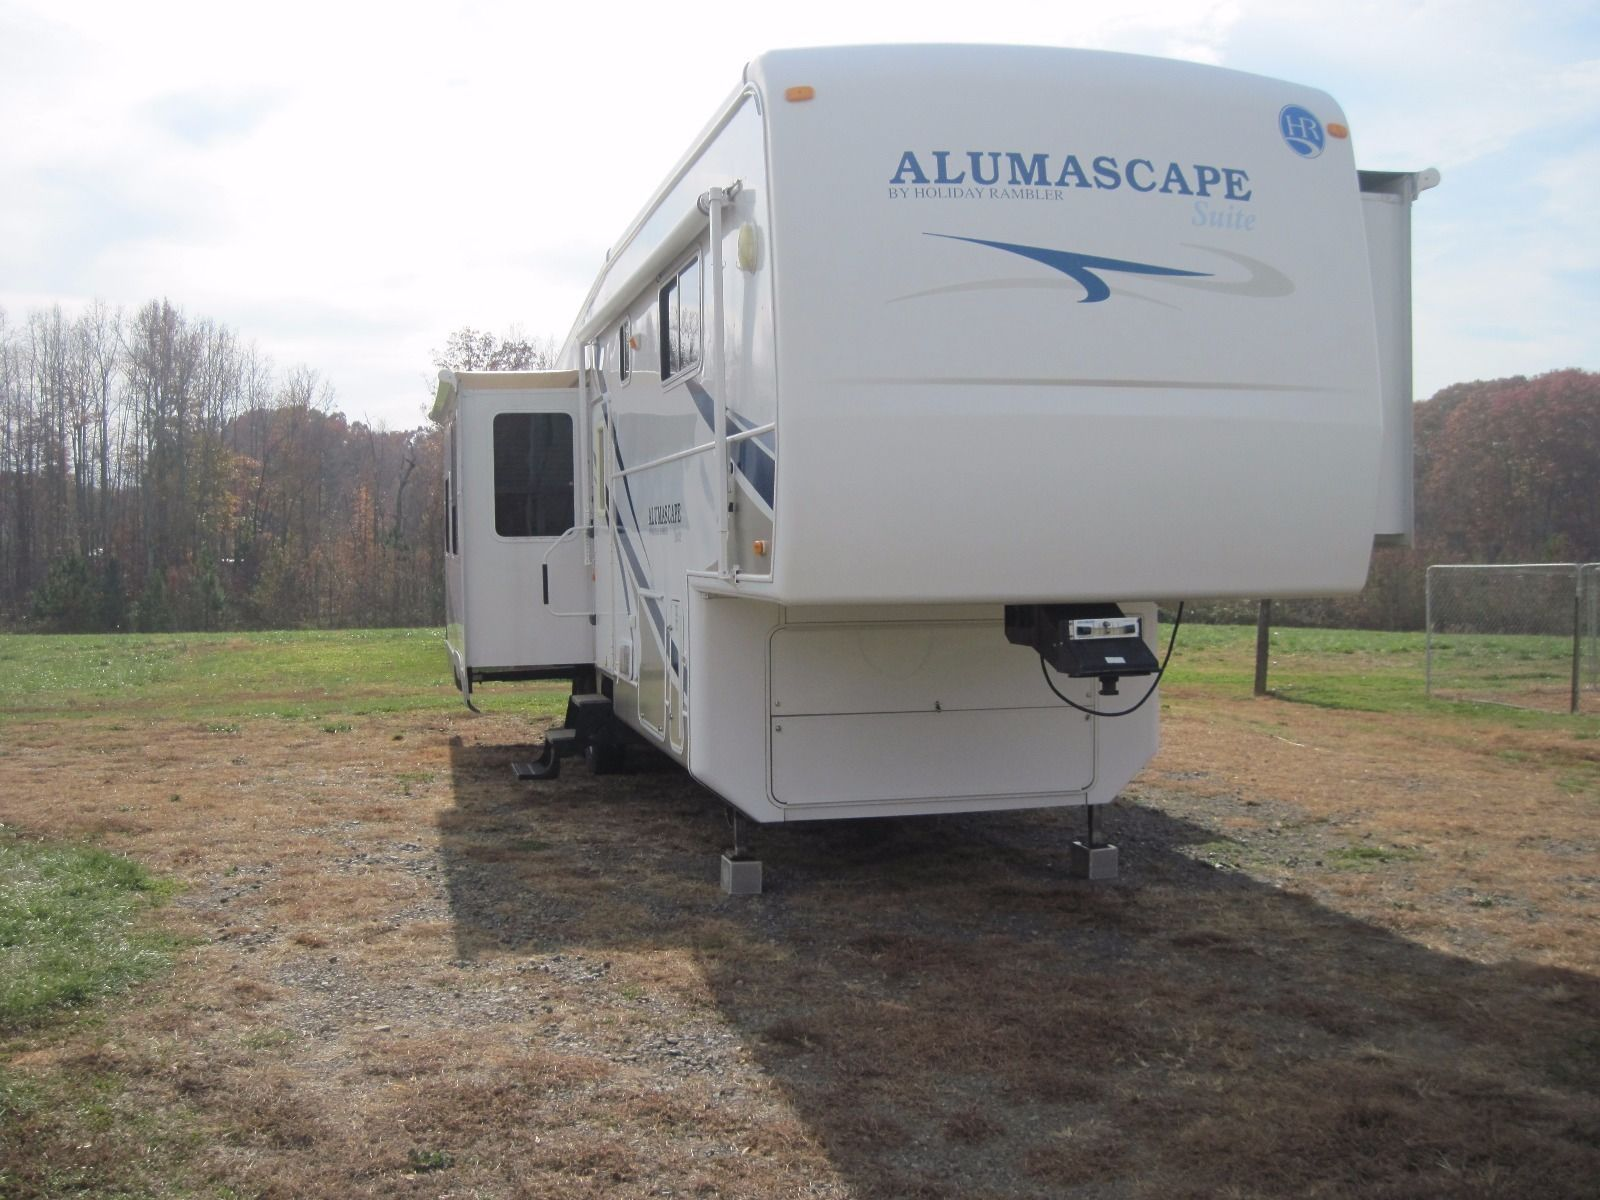 2008 Holiday Rambler Alumscape 5th Wheel Model M 33skq for sale